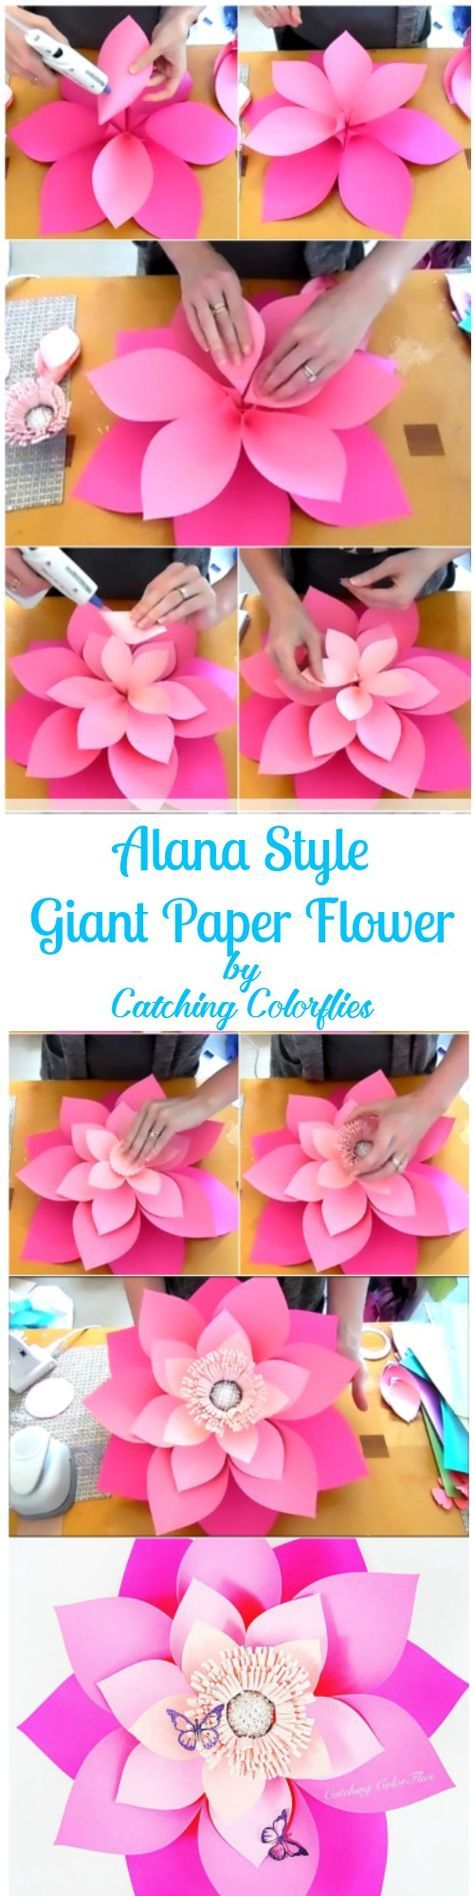 Alana Style Giant Flower Templates Fuggony Pinterest Template